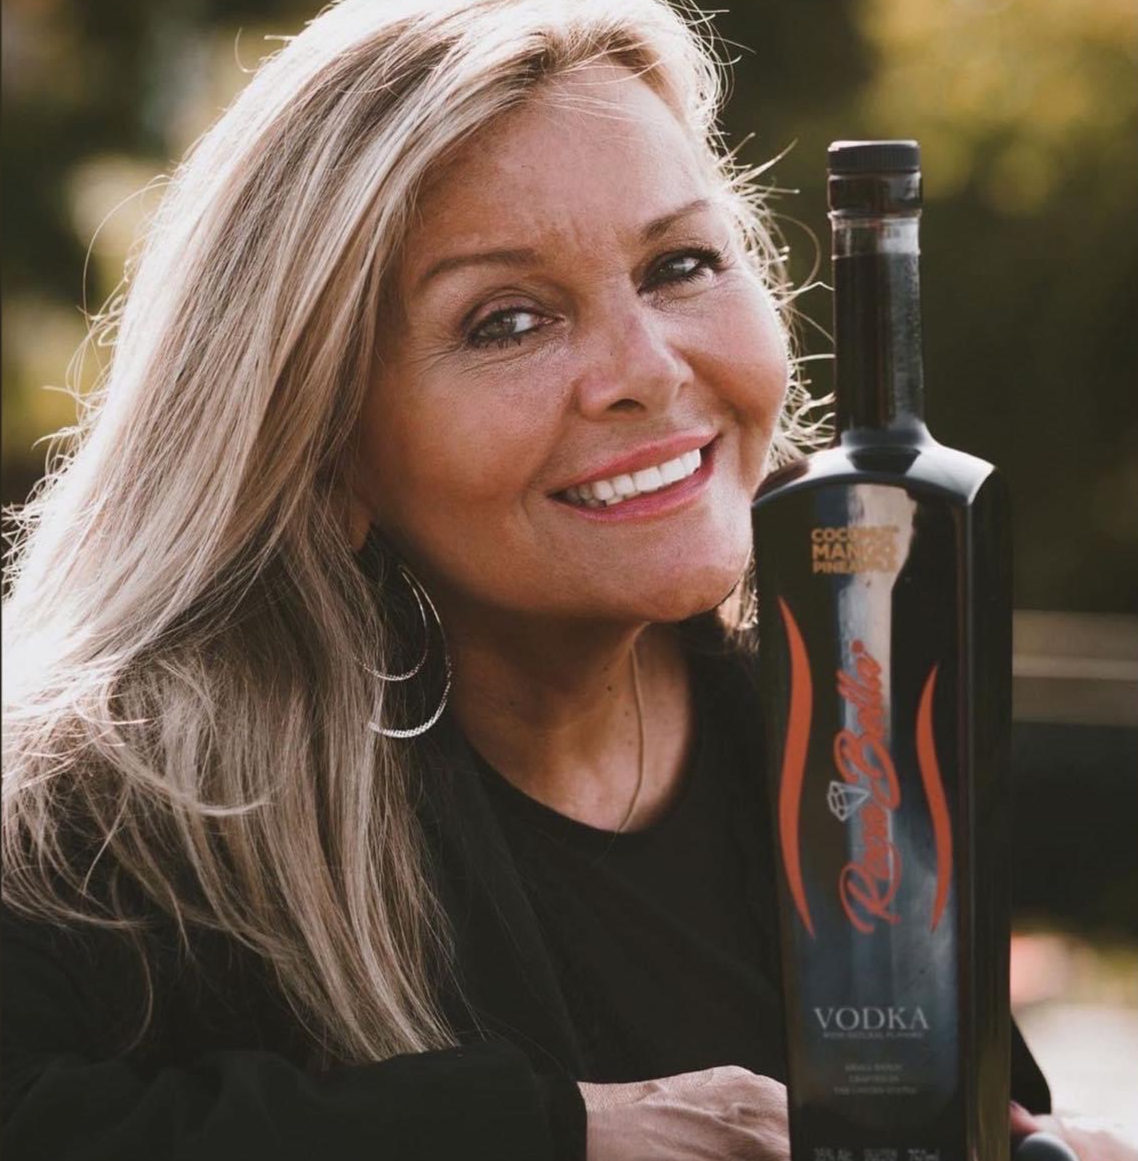 Cheryl Lee - Founder, Chief Executive Officer, RocaBella Brands